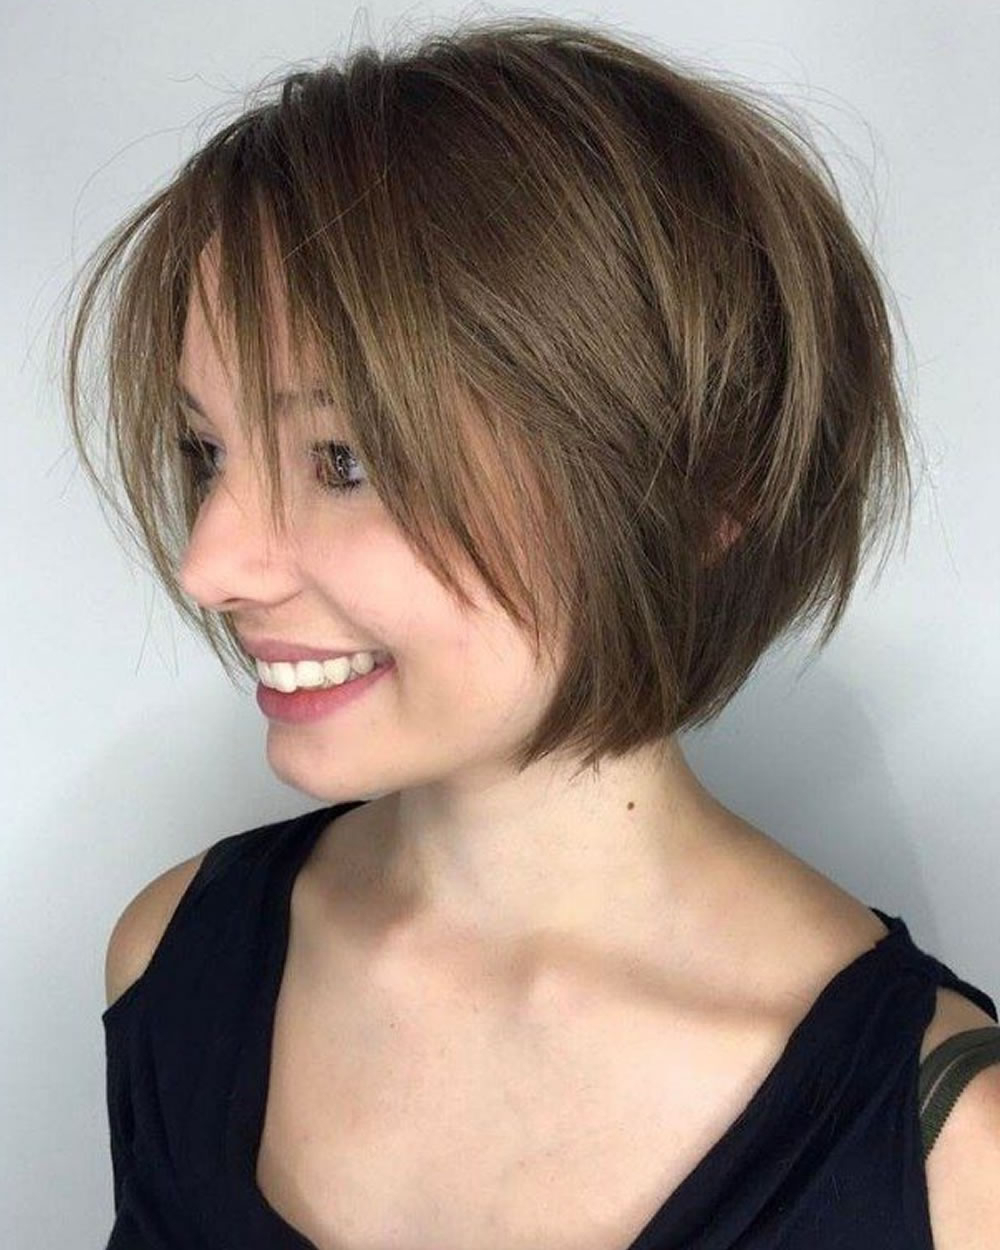 33 Best Short Bob Haircuts With Bangs And Layered Bob Intended For Hort Bob Haircuts With Bangs (Gallery 6 of 20)